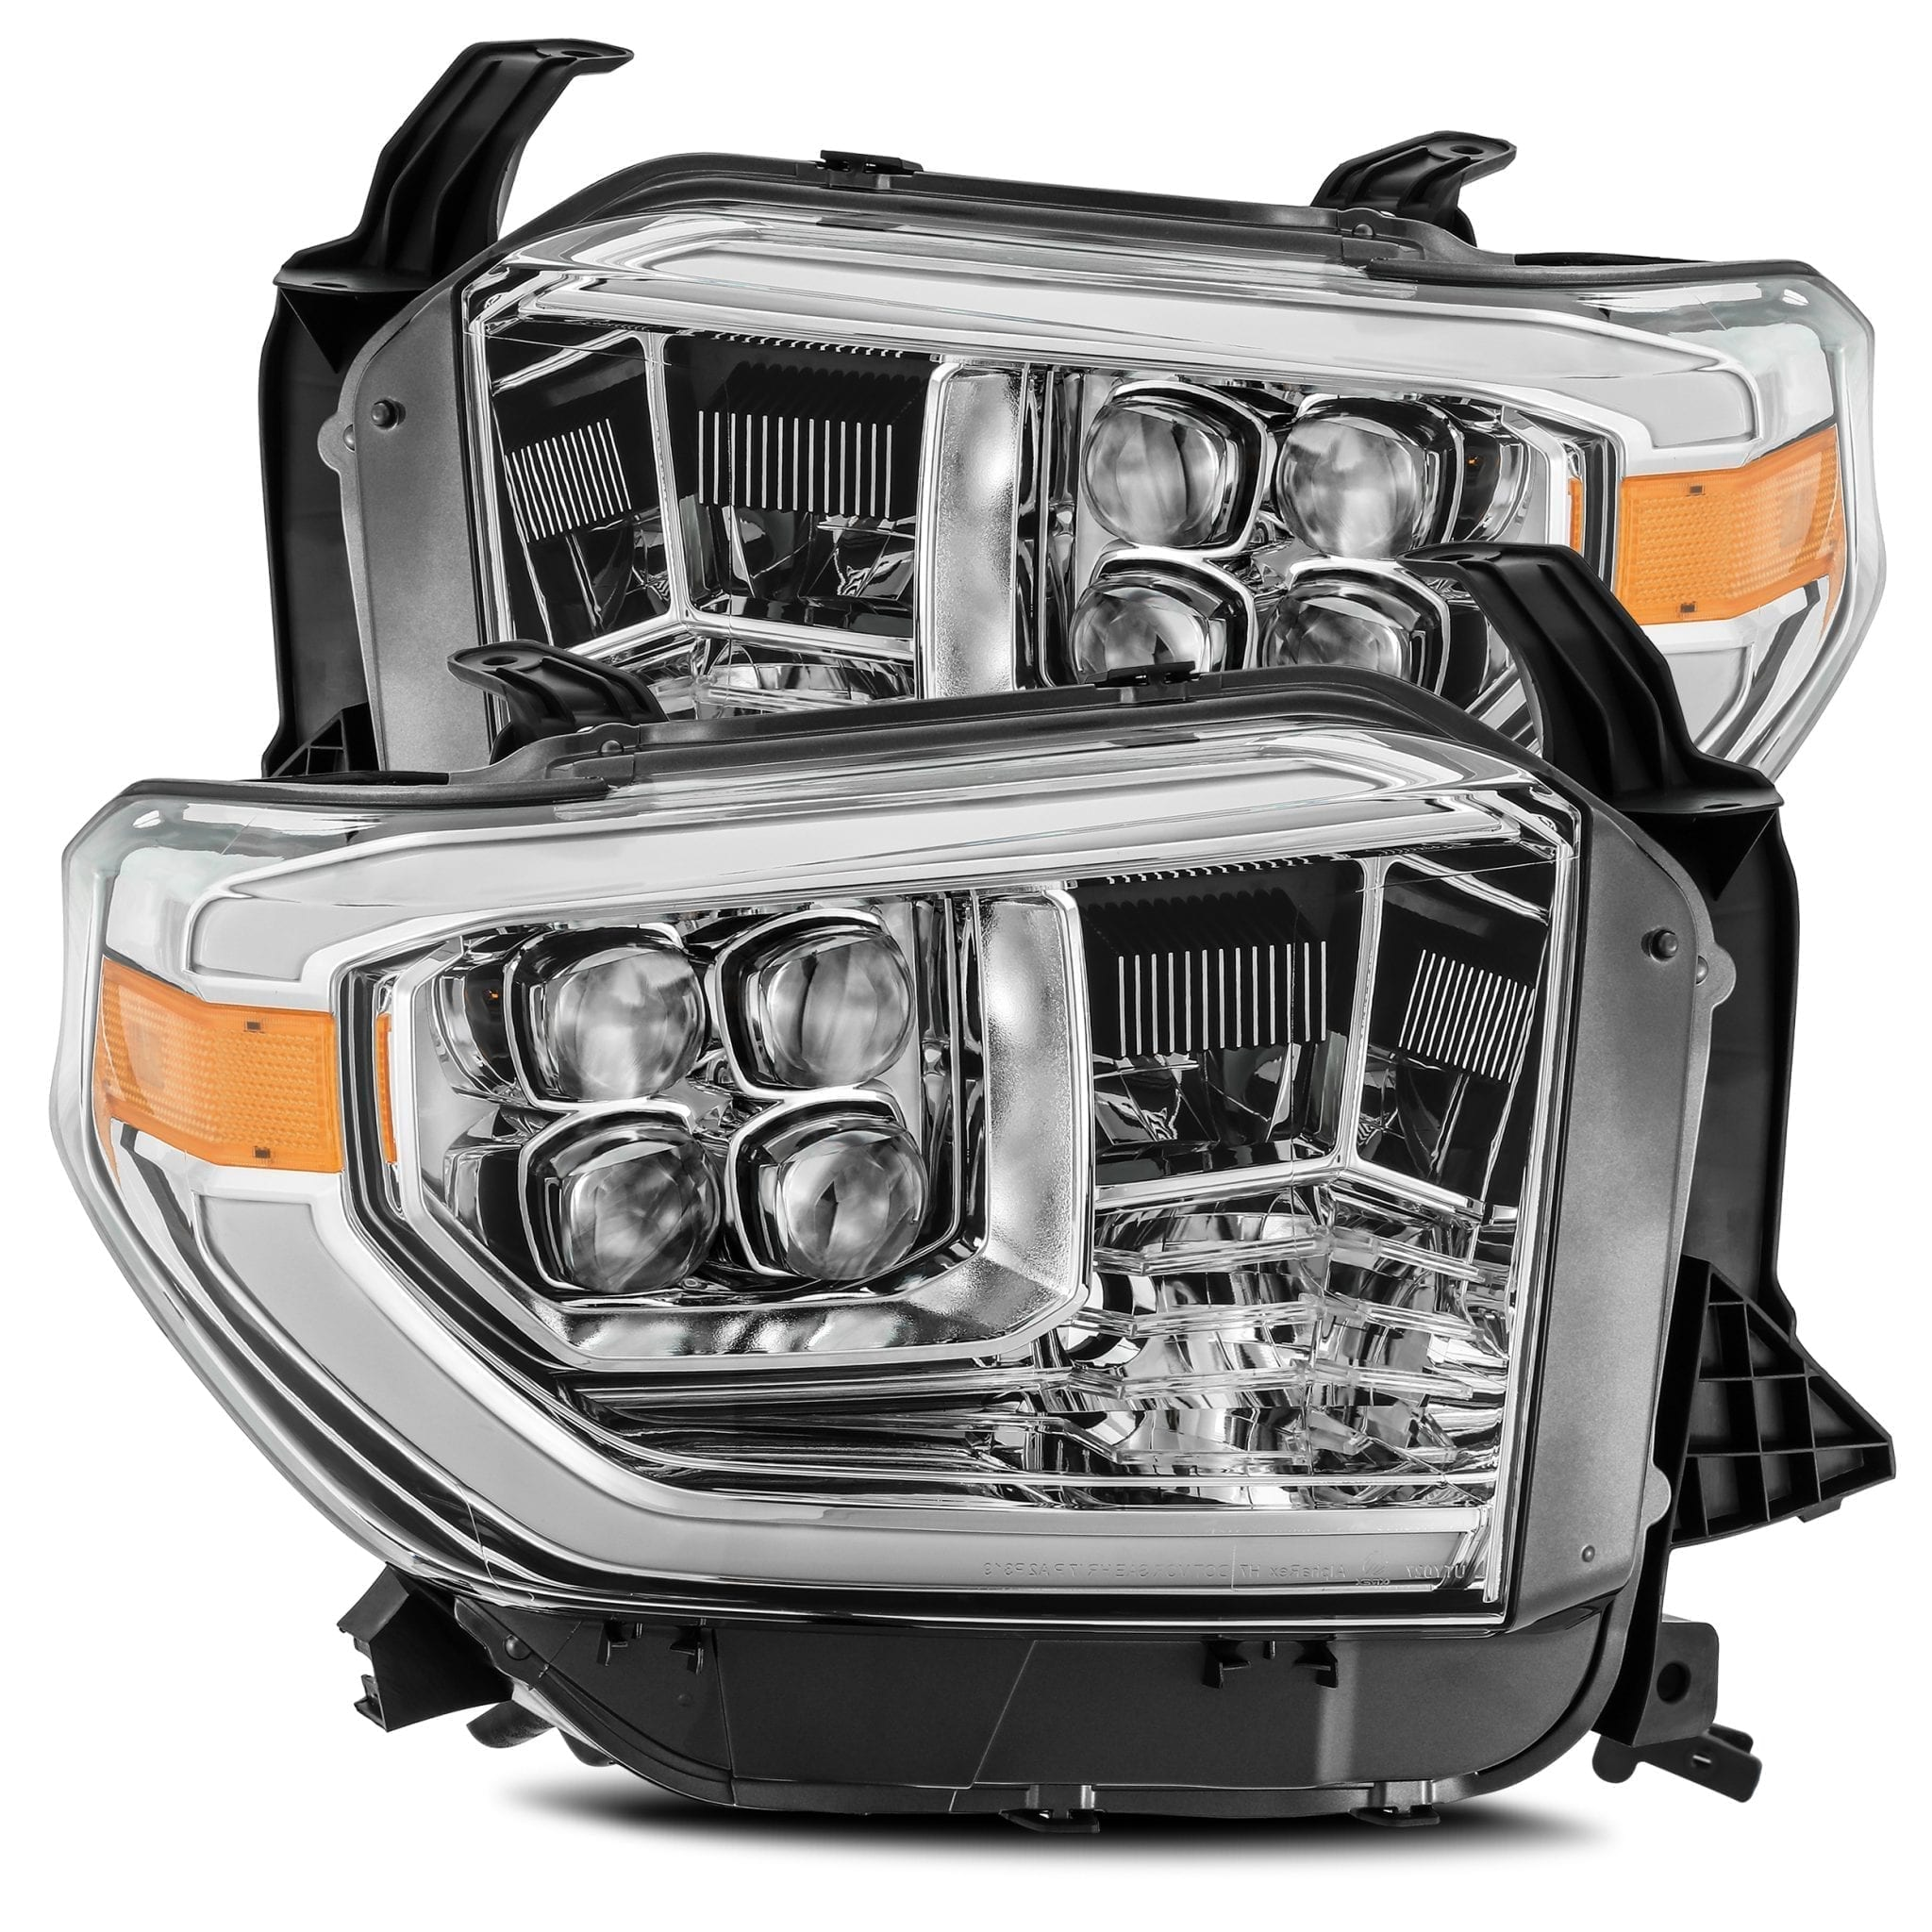 AlphaRex 14-20 Toyota Tundra NOVA-Series LED Projector Headlights Chrome - Ships Free